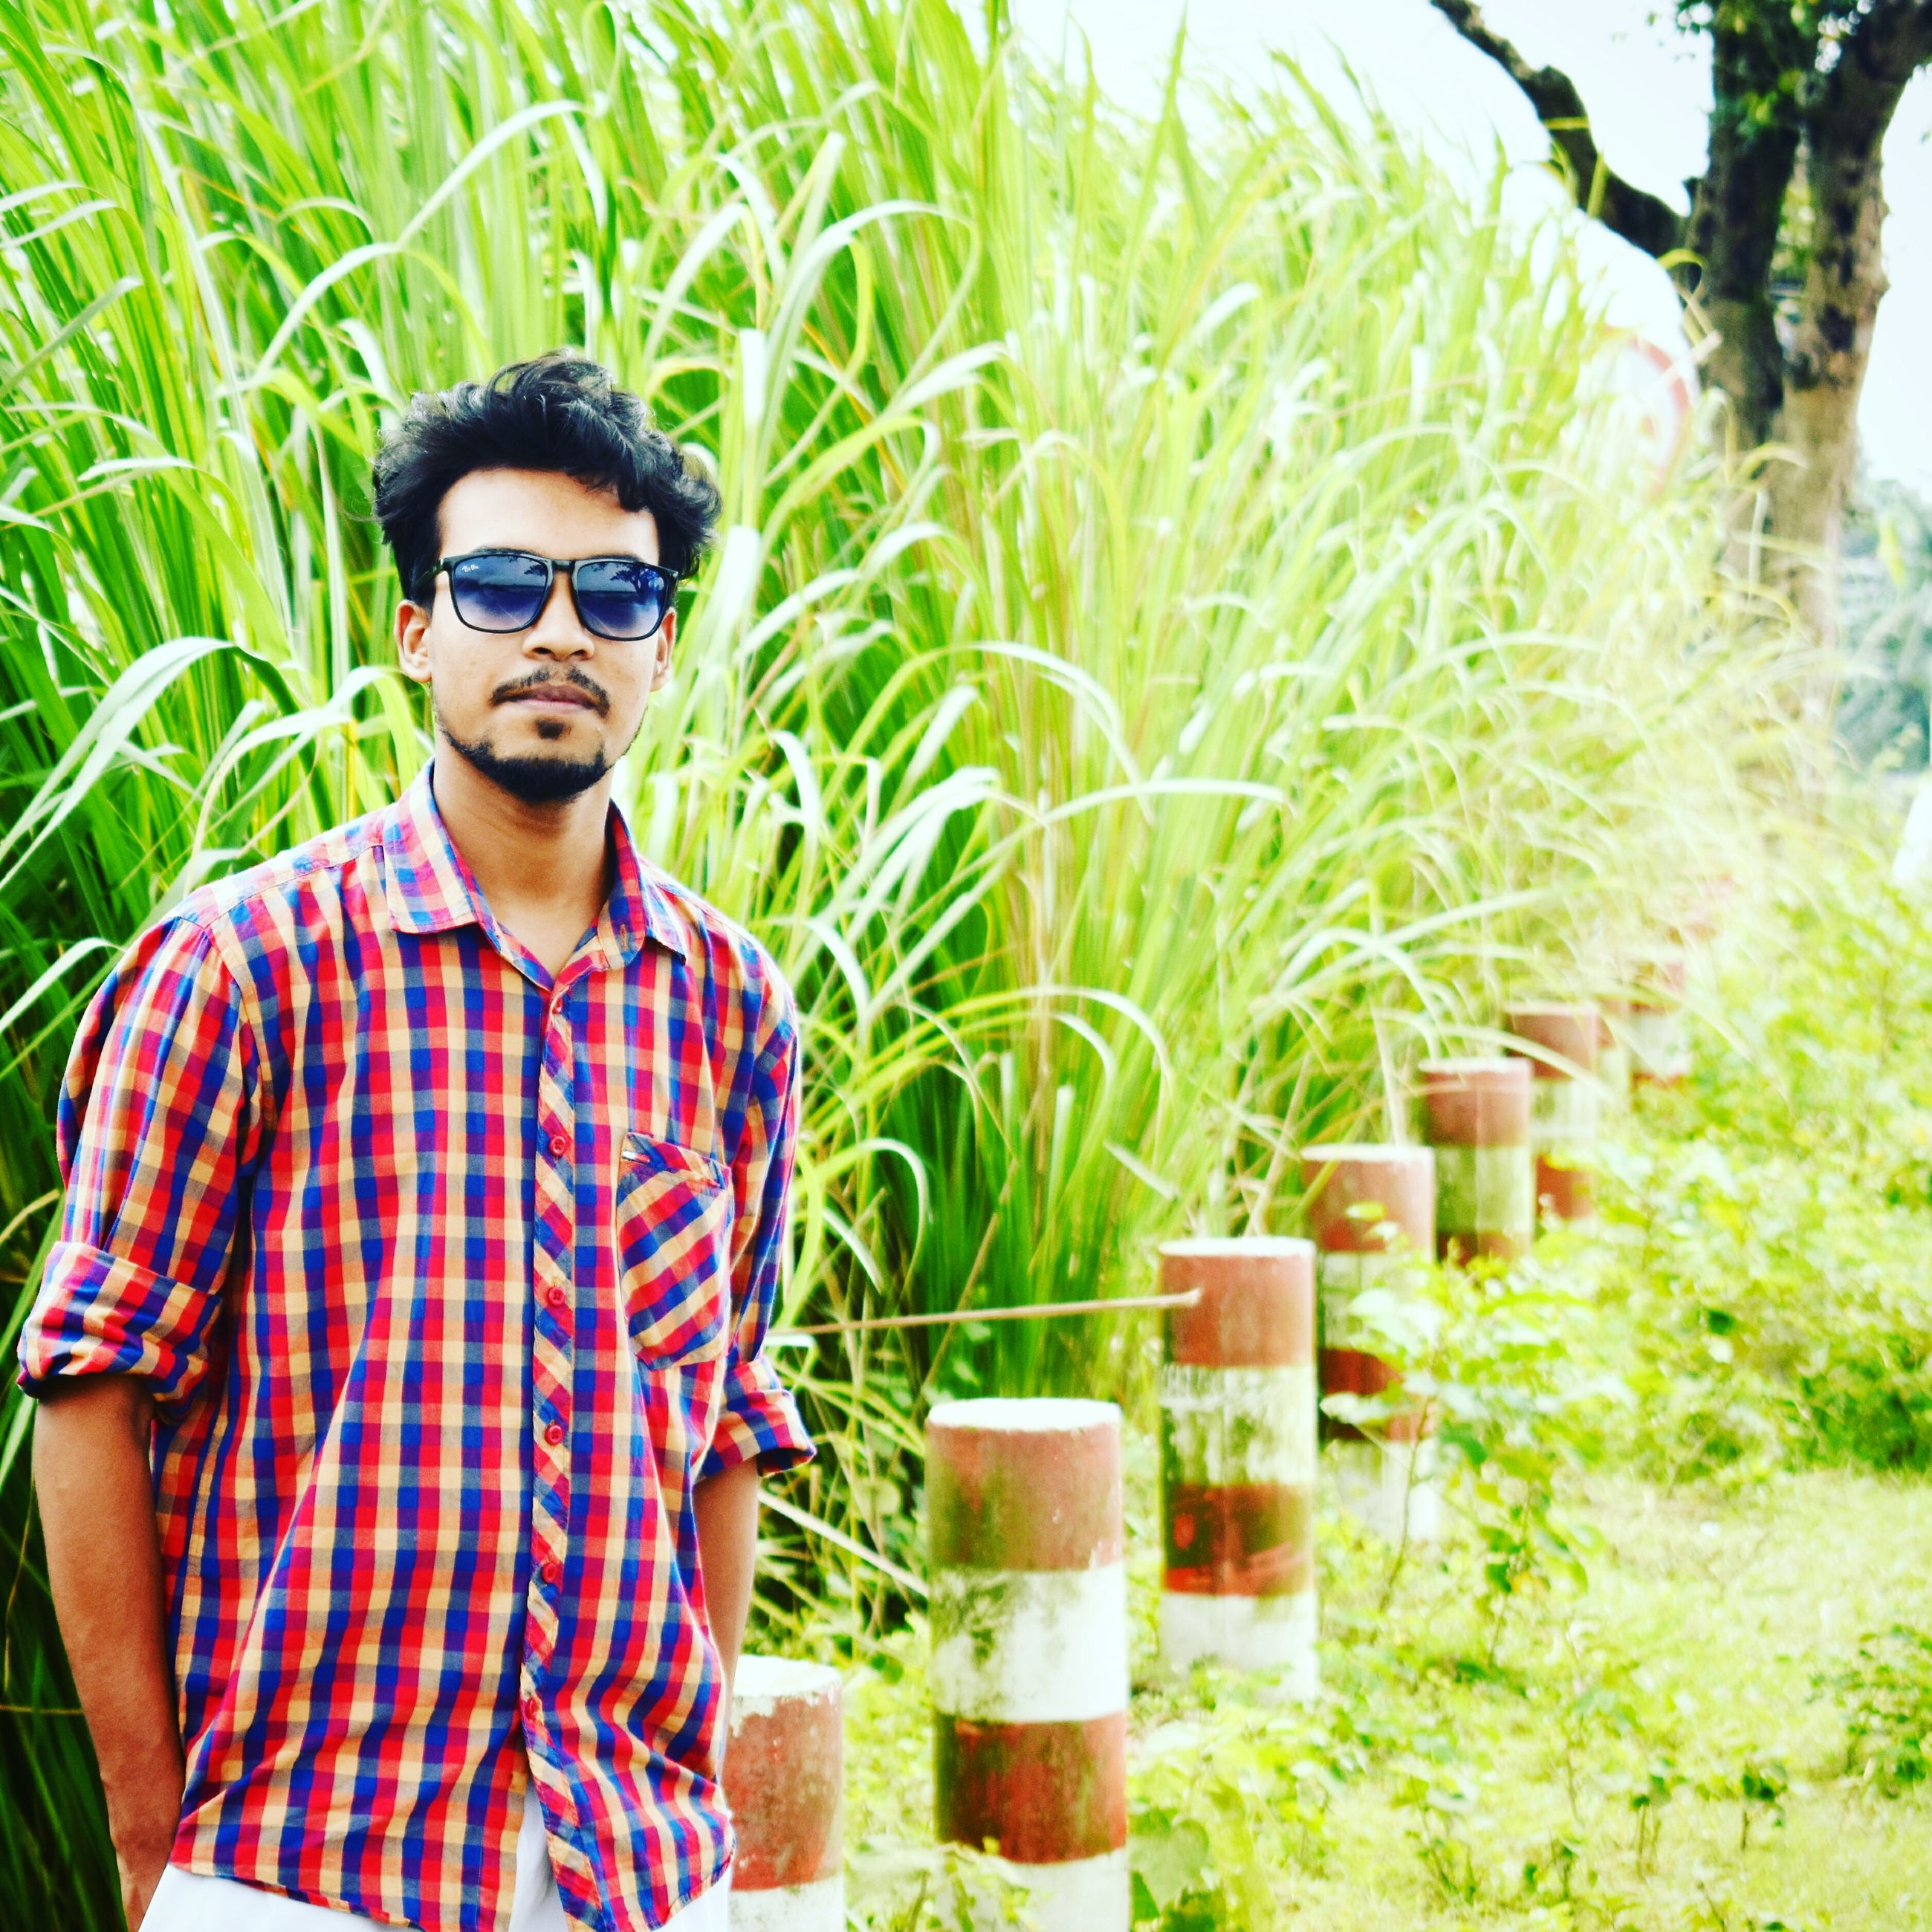 sunglasses, one person, checked pattern, grass, one man only, one young man only, only men, young adult, adults only, day, portrait, outdoors, leisure activity, standing, looking at camera, young men, vacations, adult, real people, eyeglasses, people, nature